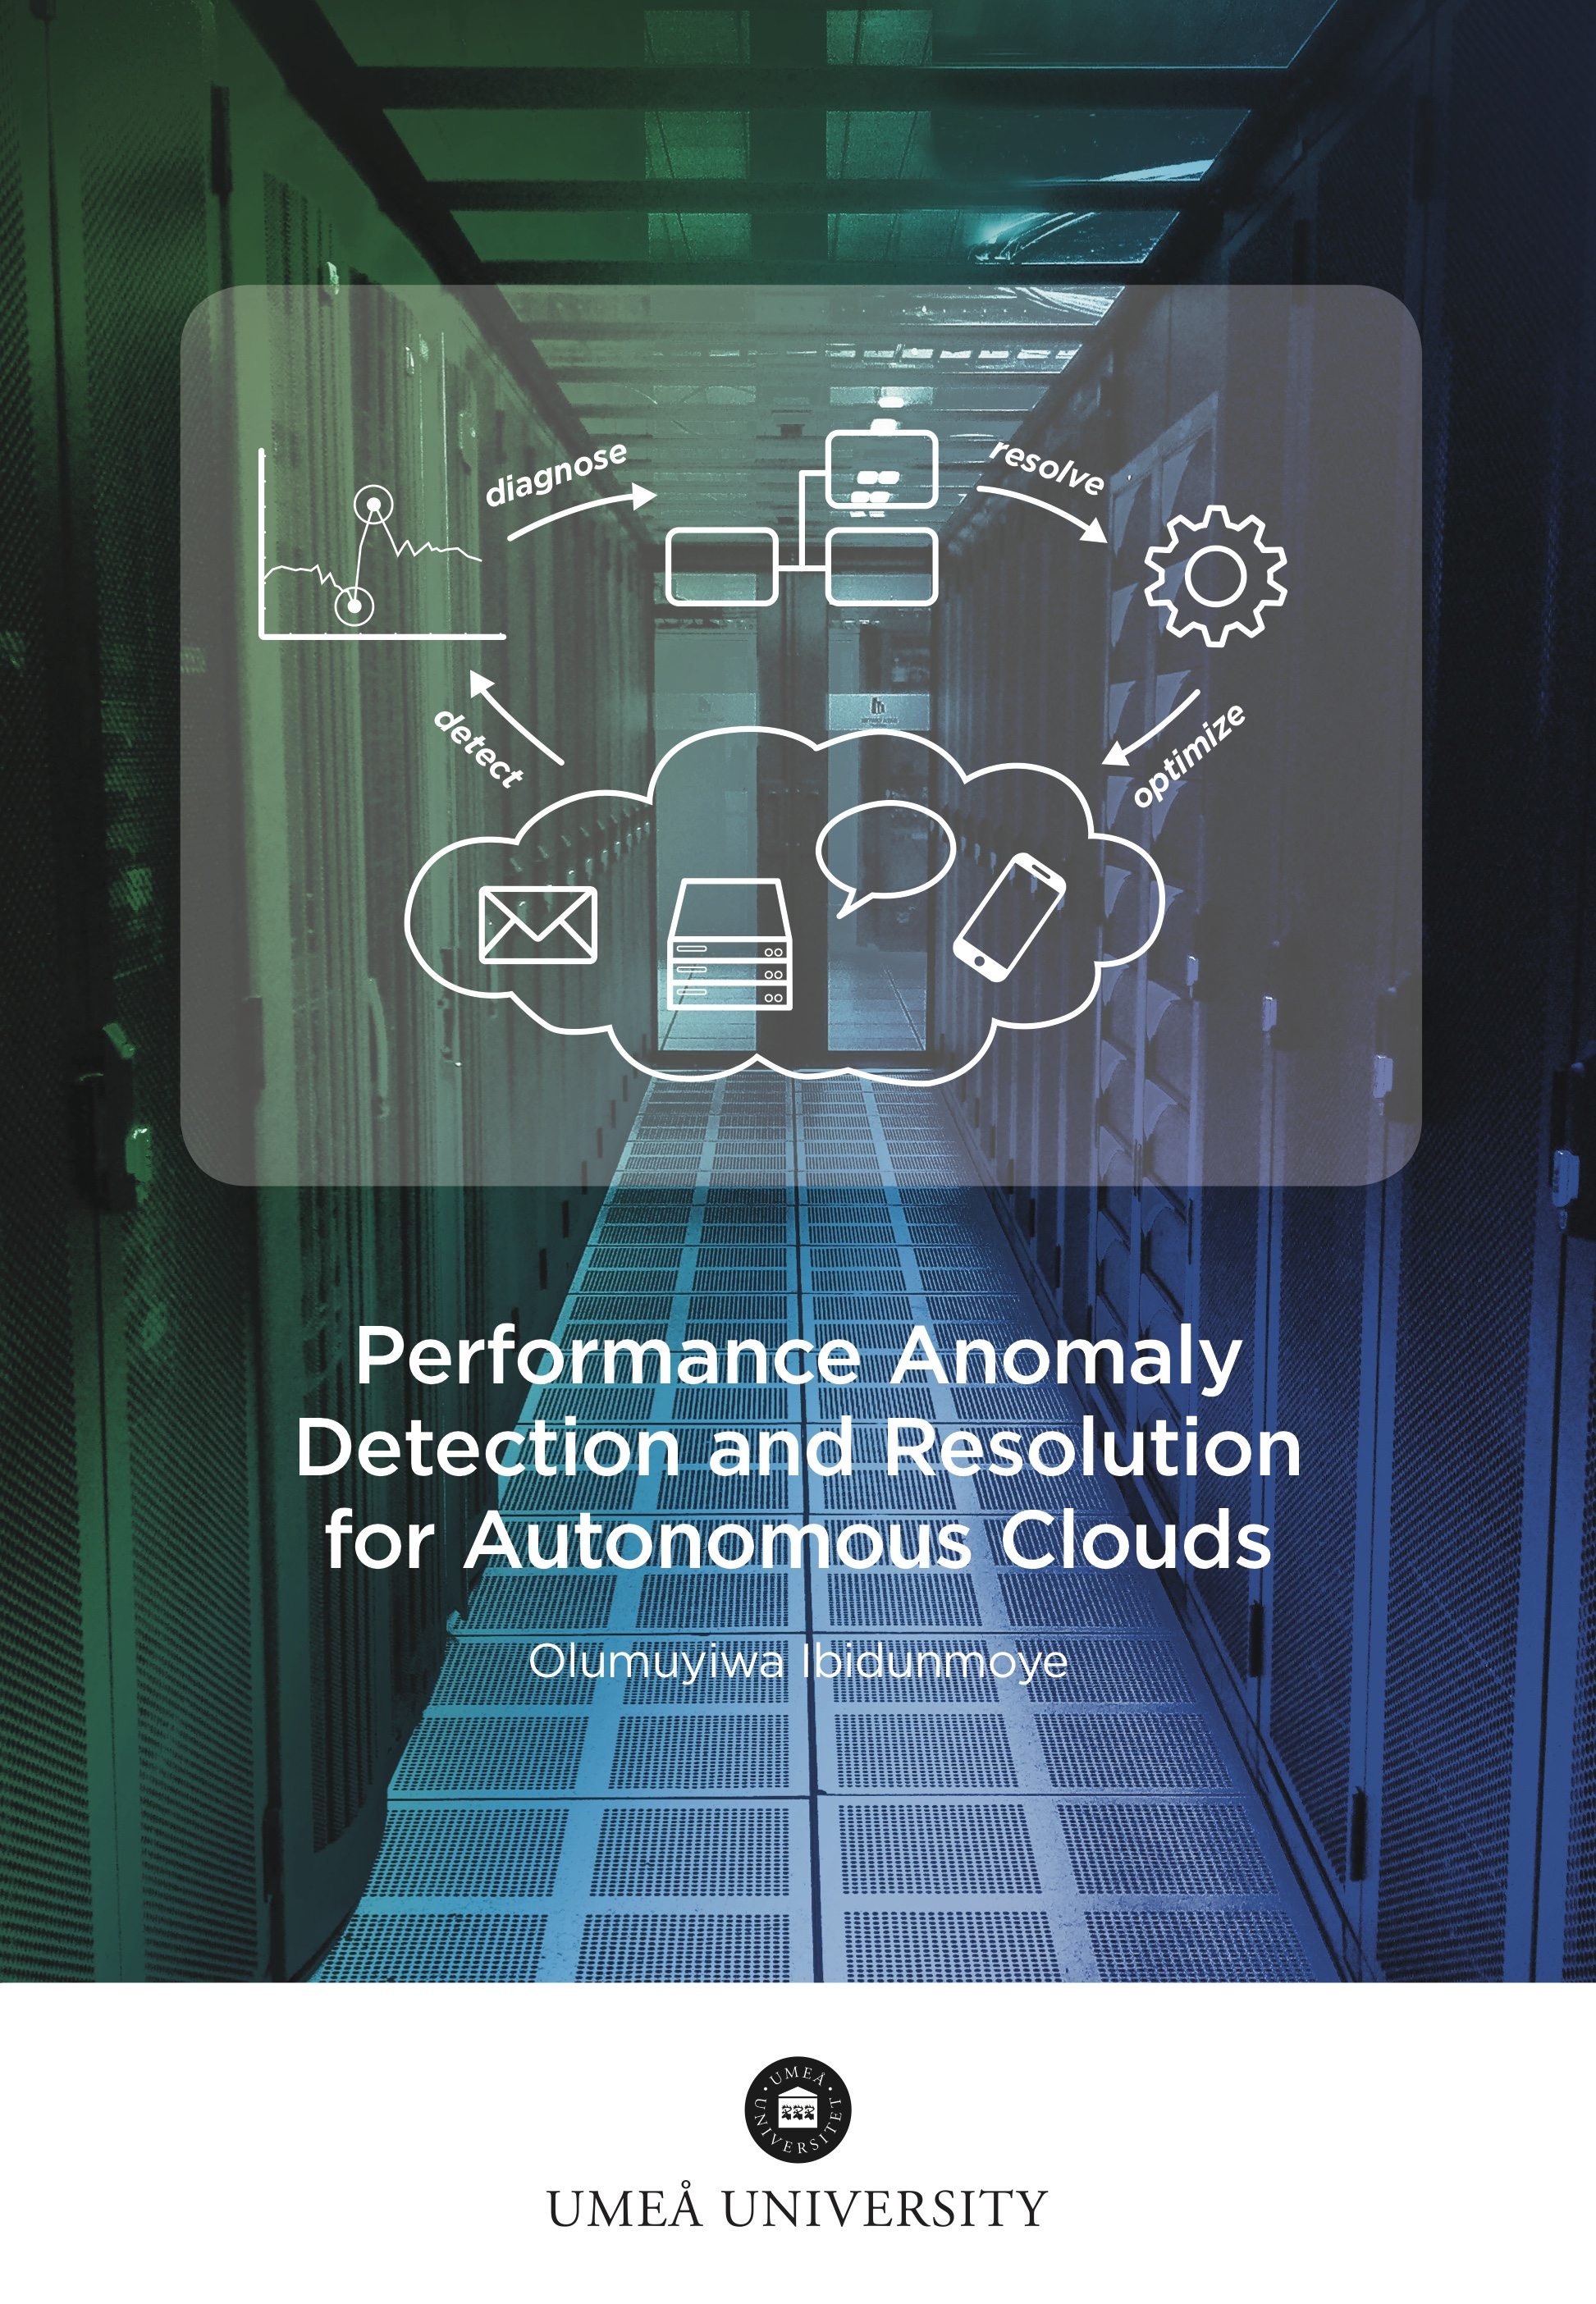 Performance anomaly detection and resolution for autonomous clouds